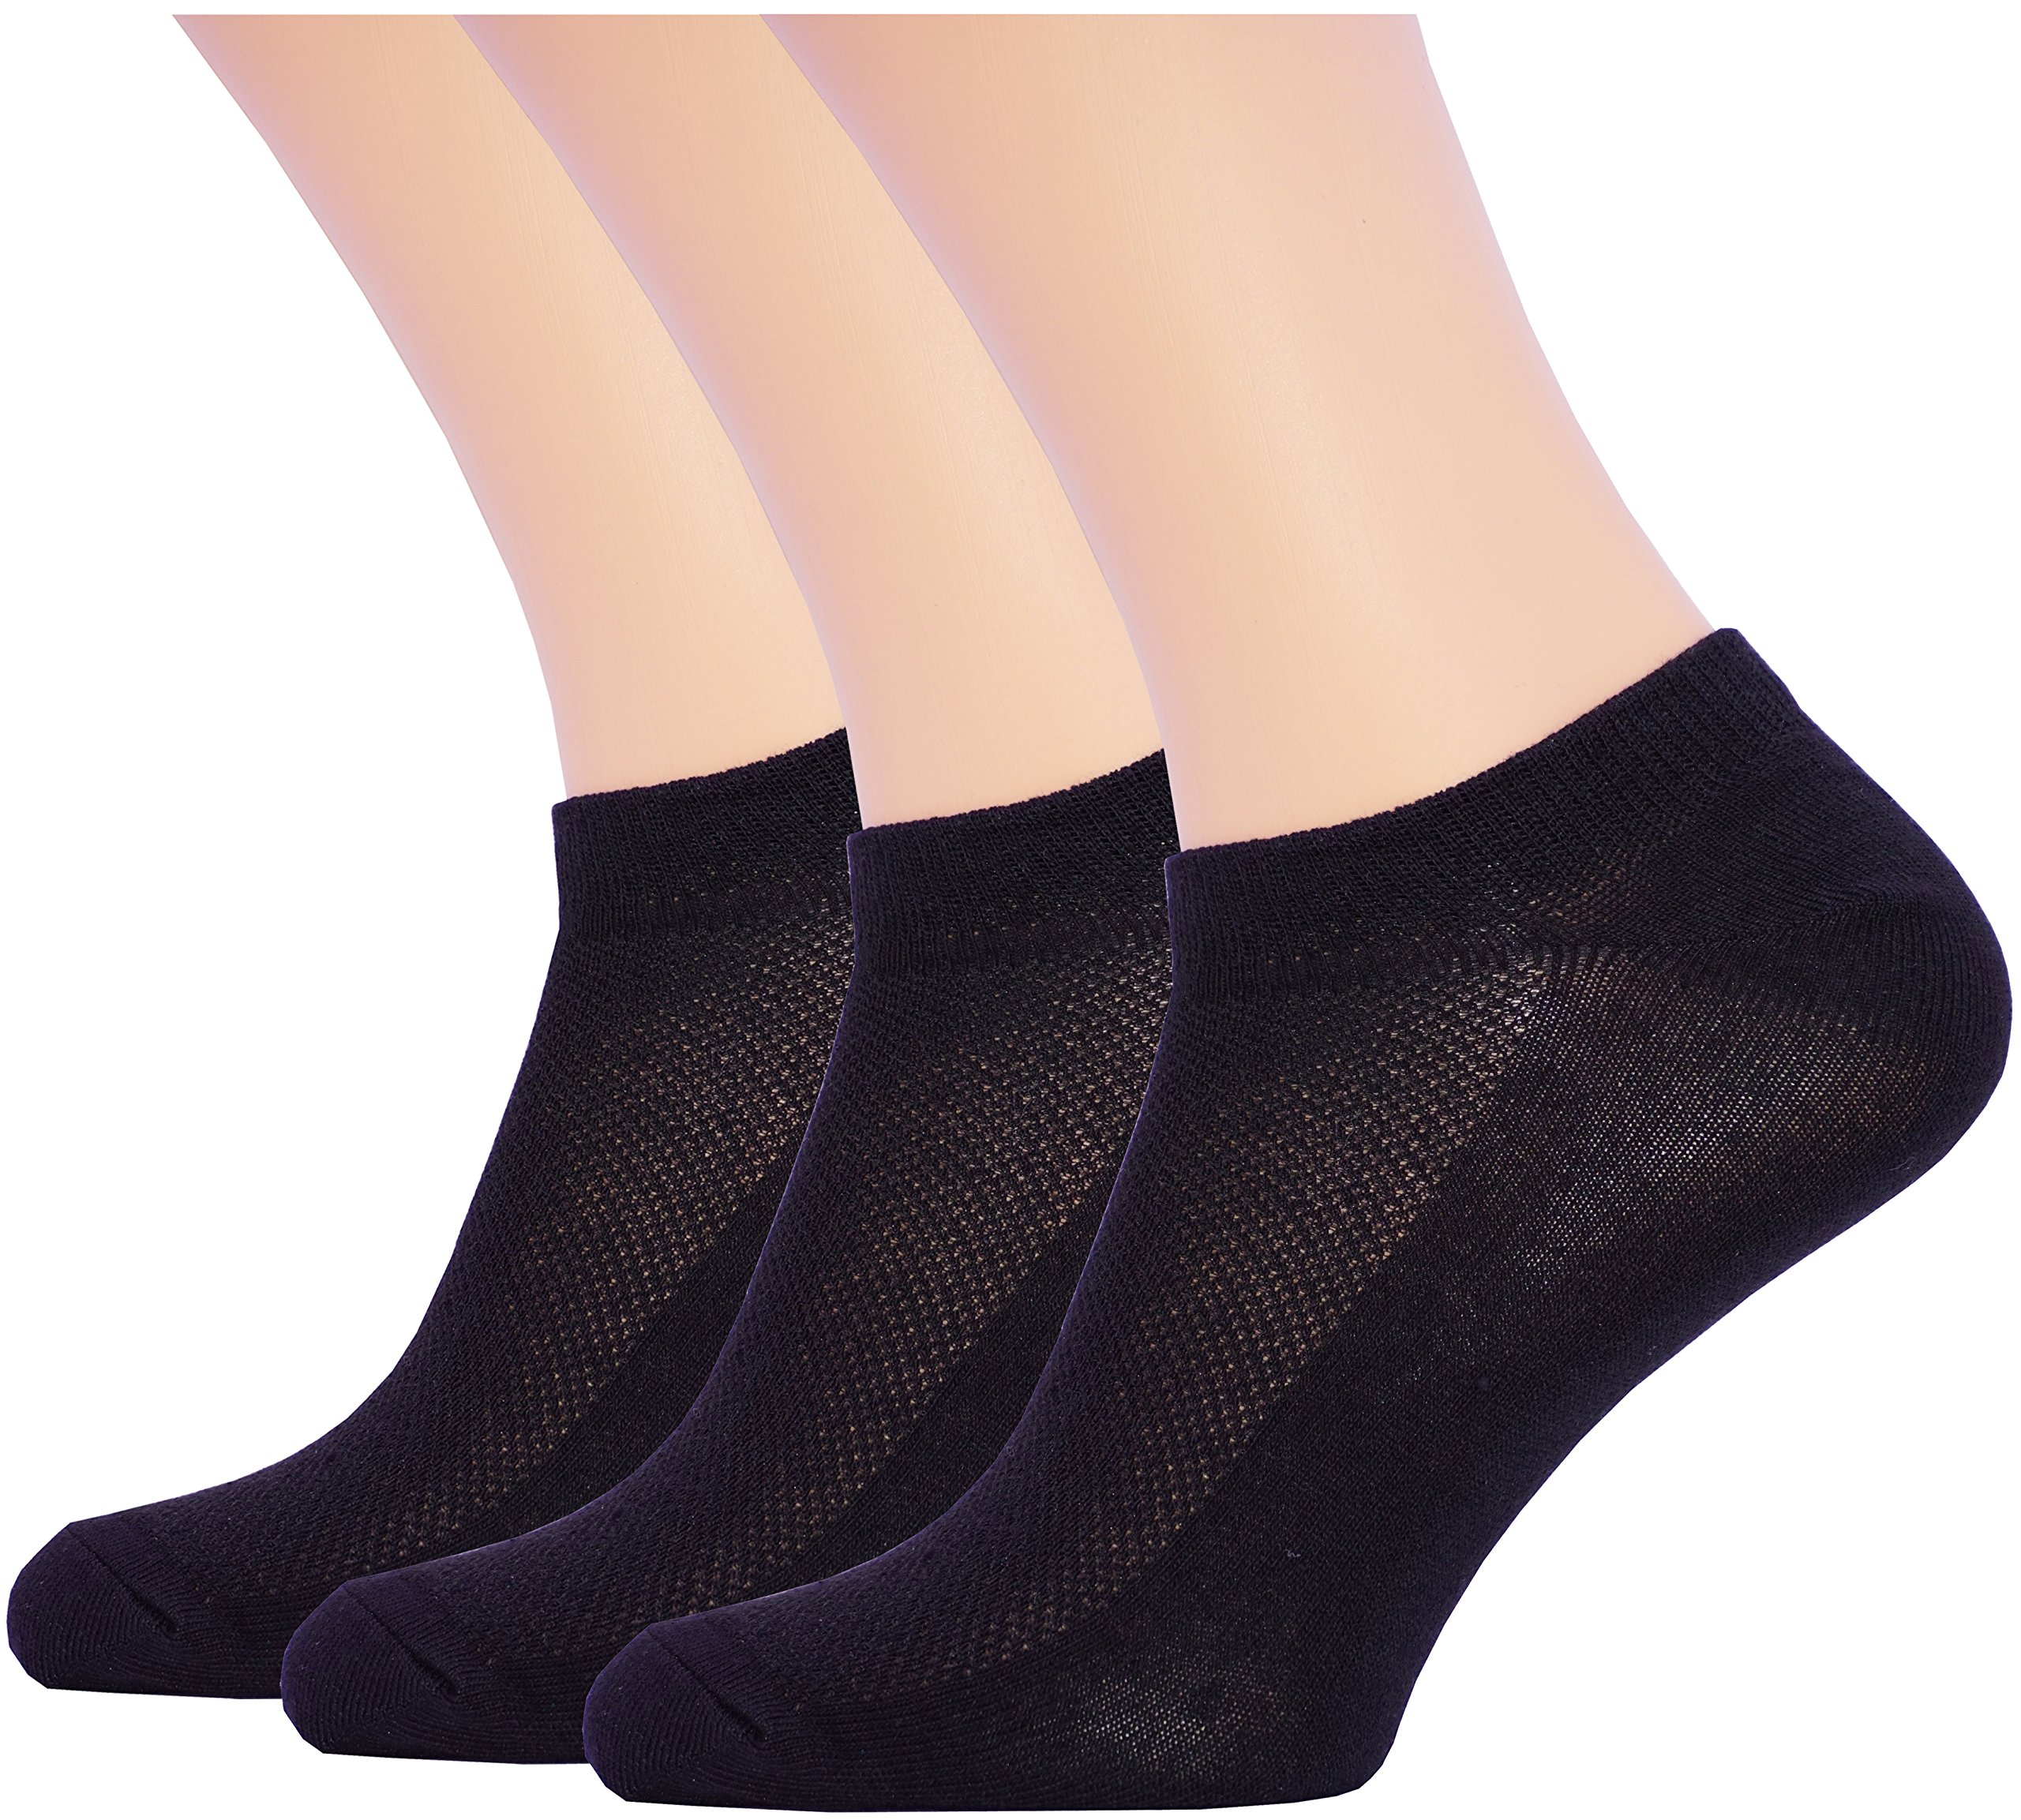 3 Pack Unisex Ultra Thin Breathable Dry Fit Low Cut Running Ankle Socks black color